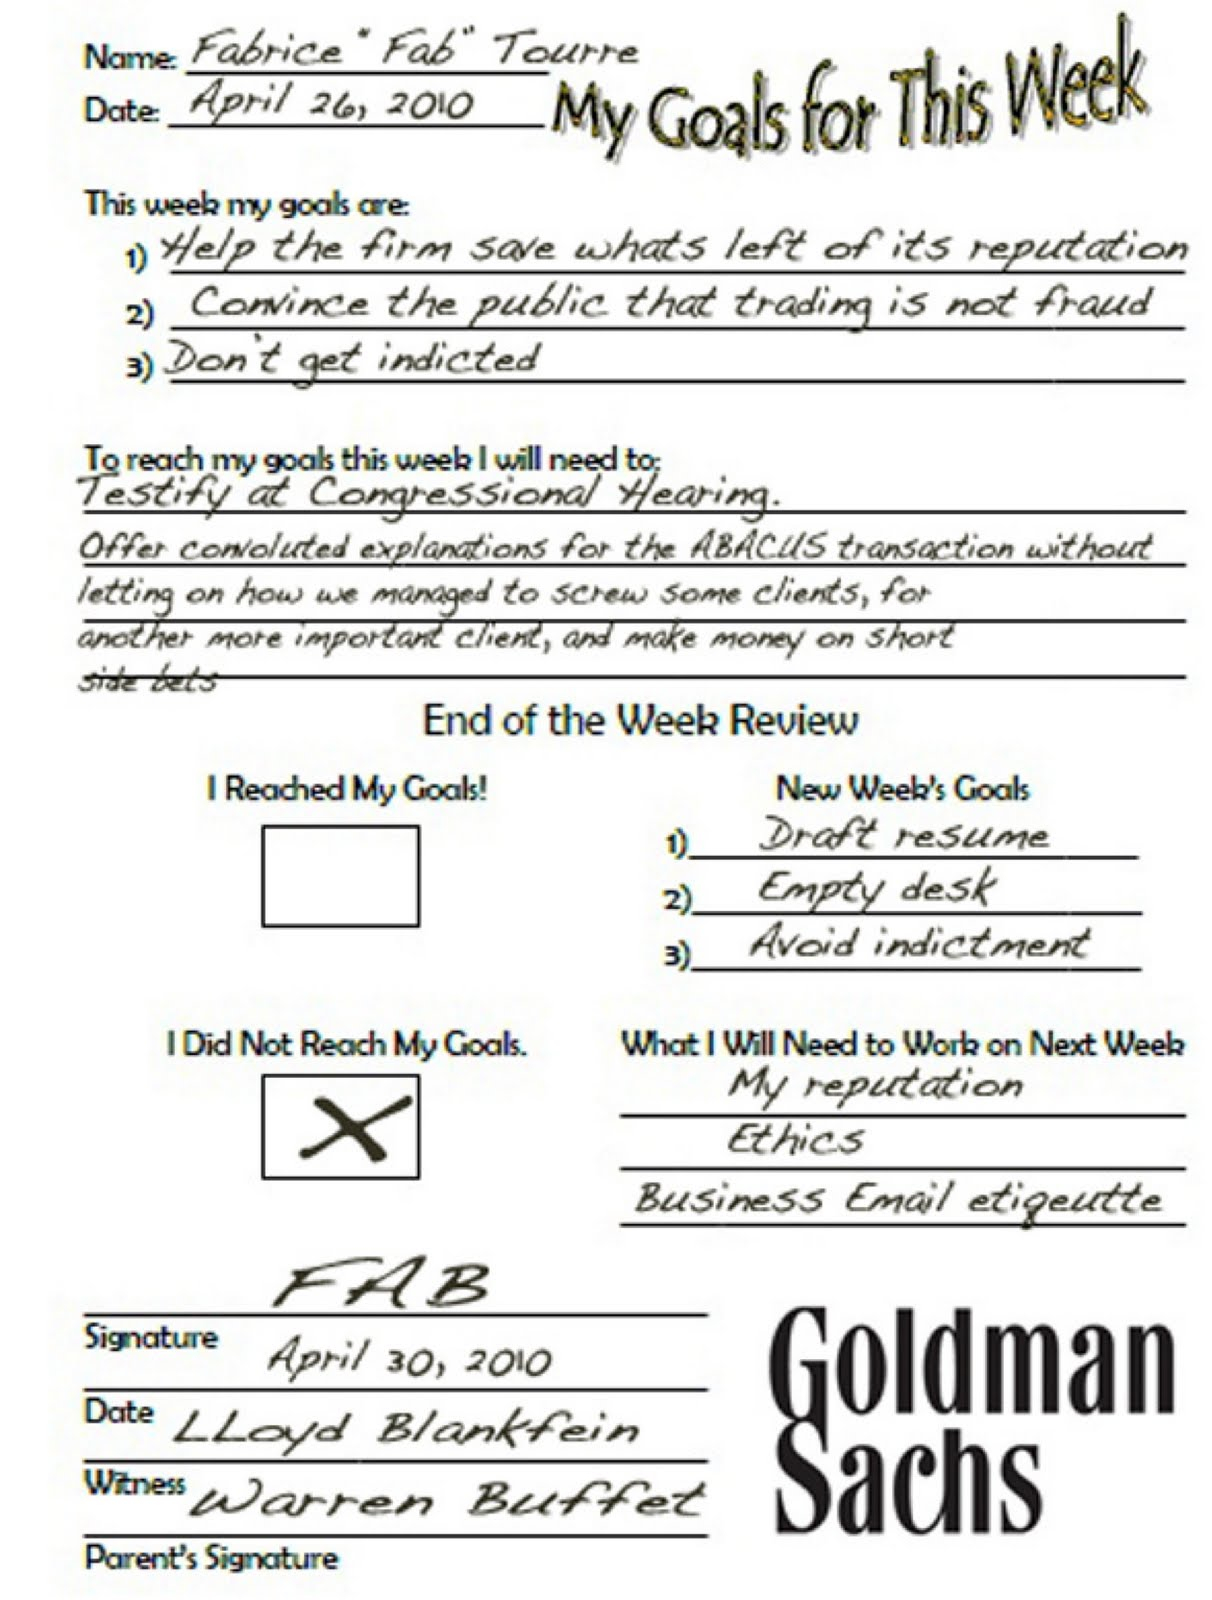 Employee Review: Funny Employee Review Comments